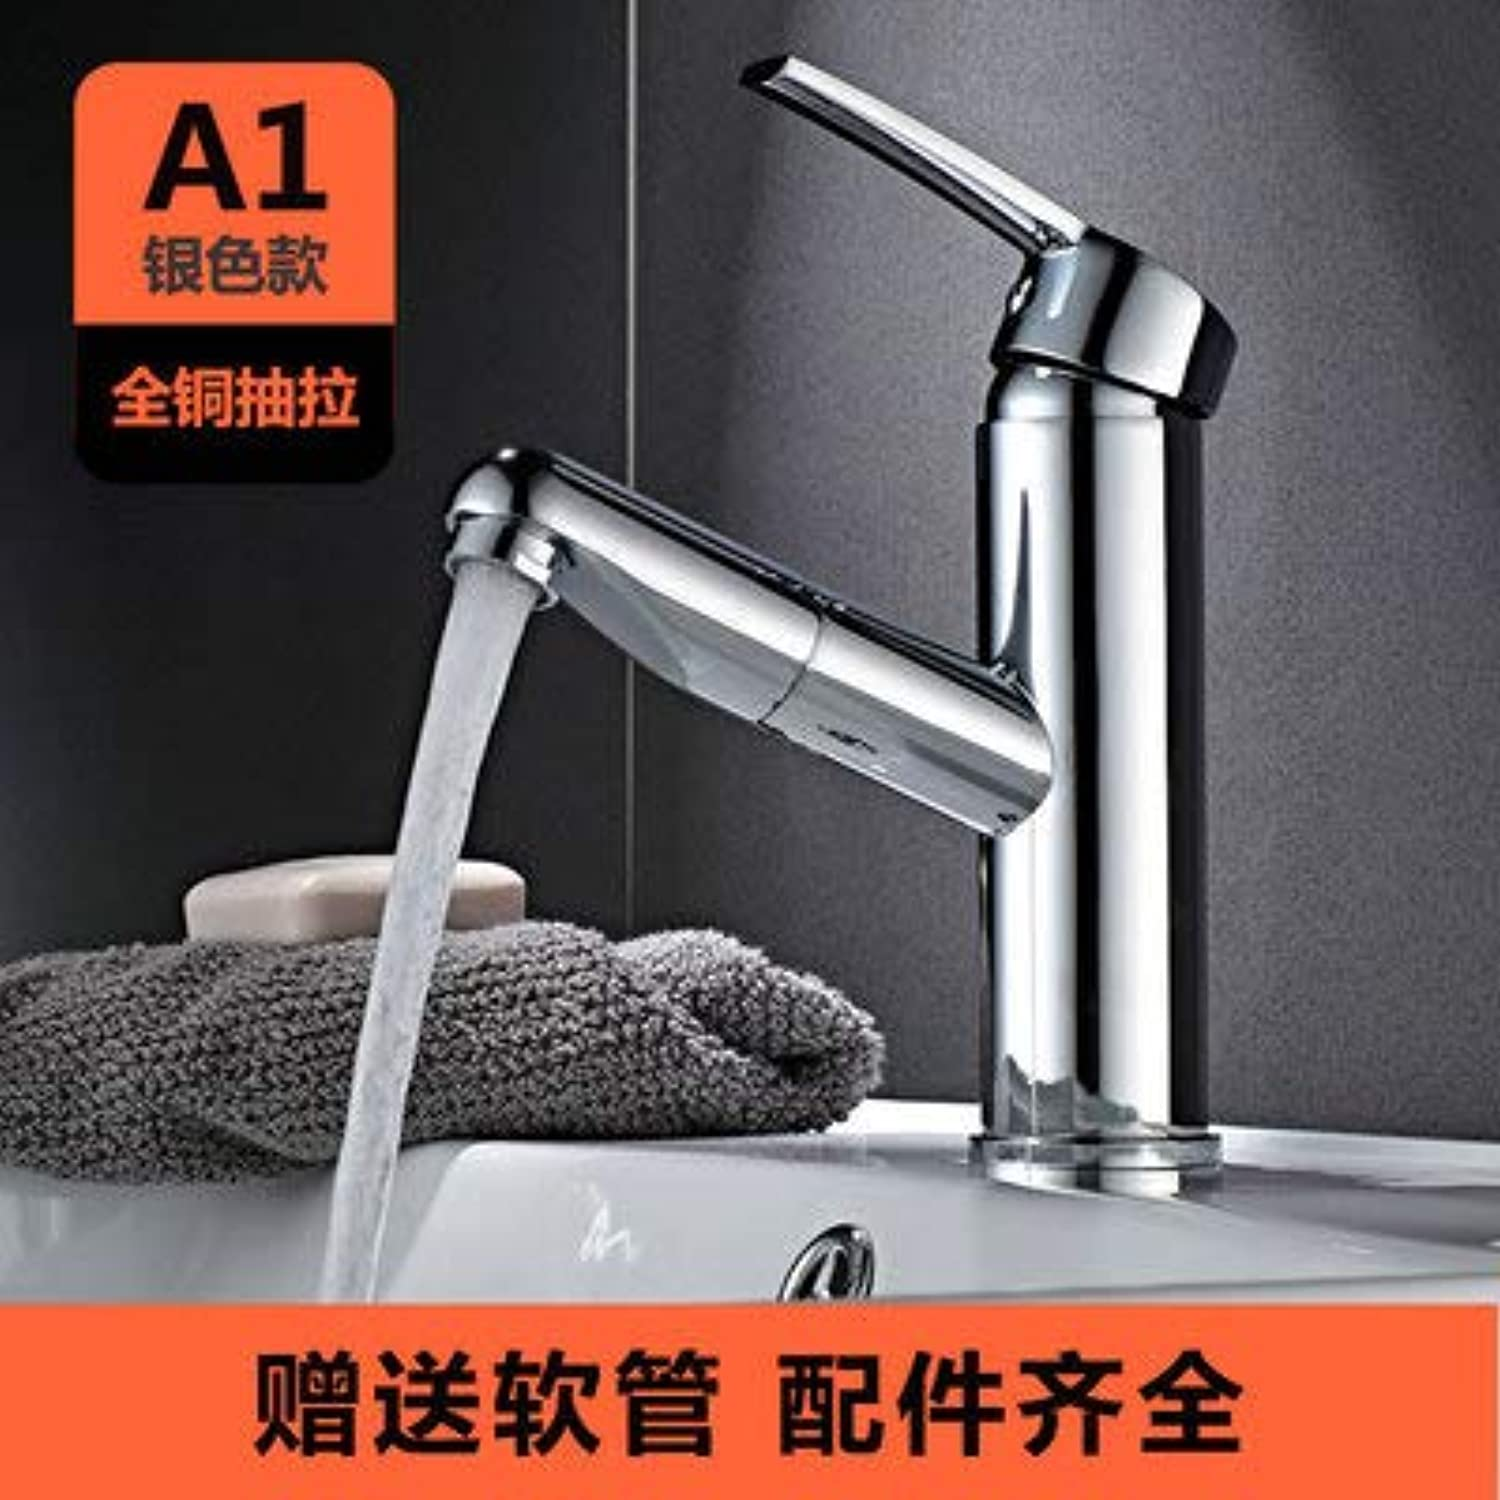 PajCzh Taps Taps Faucet Faucet All Copper Pull-Type Basin Faucet Hot And Cold Wash Basin Wash Basin Faucet Can Be Raised And Lowered Washable Head Telescopic redatable, A, 1